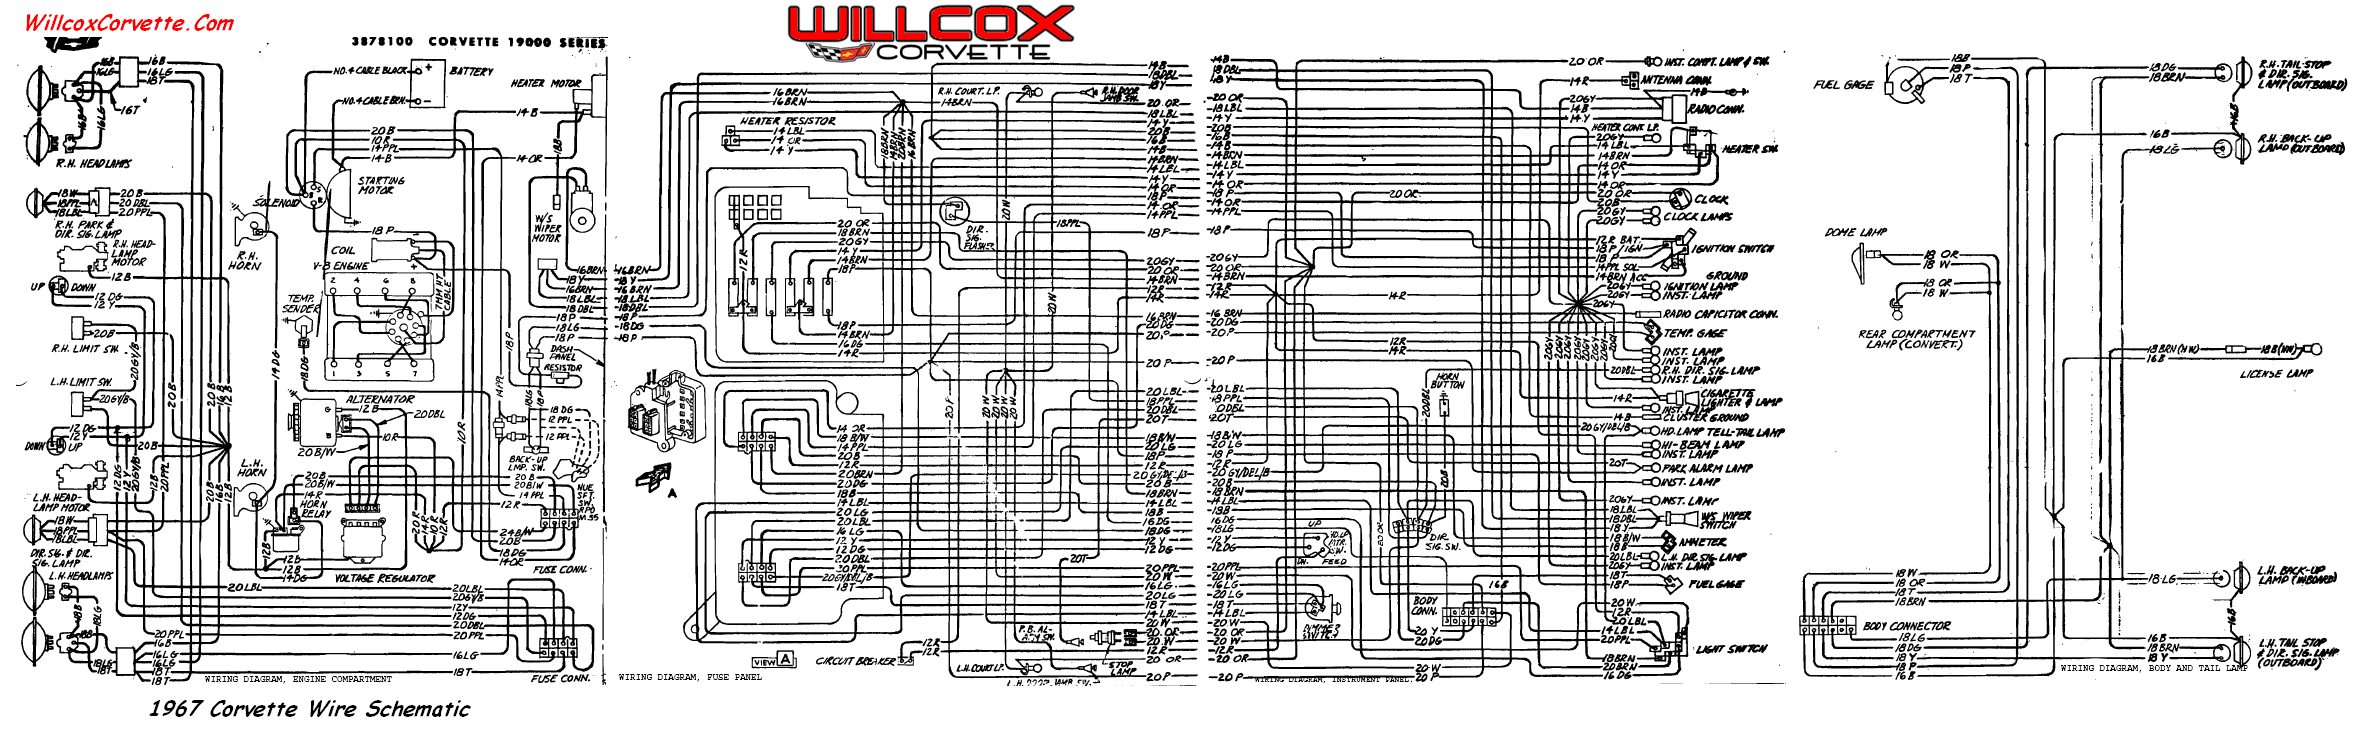 67 wire schematic for tracing wires 1967 corvette wiring diagram (tracer schematic) willcox corvette 1980 corvette wiring diagram at readyjetset.co